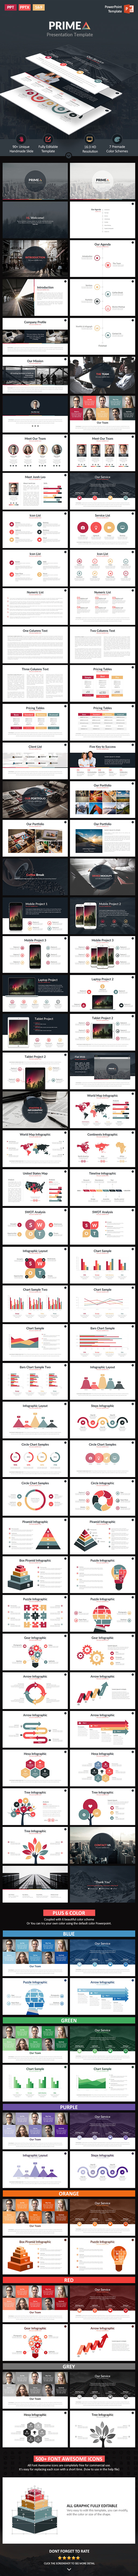 GraphicRiver Primea PowerPoint Presentation Template 11828976